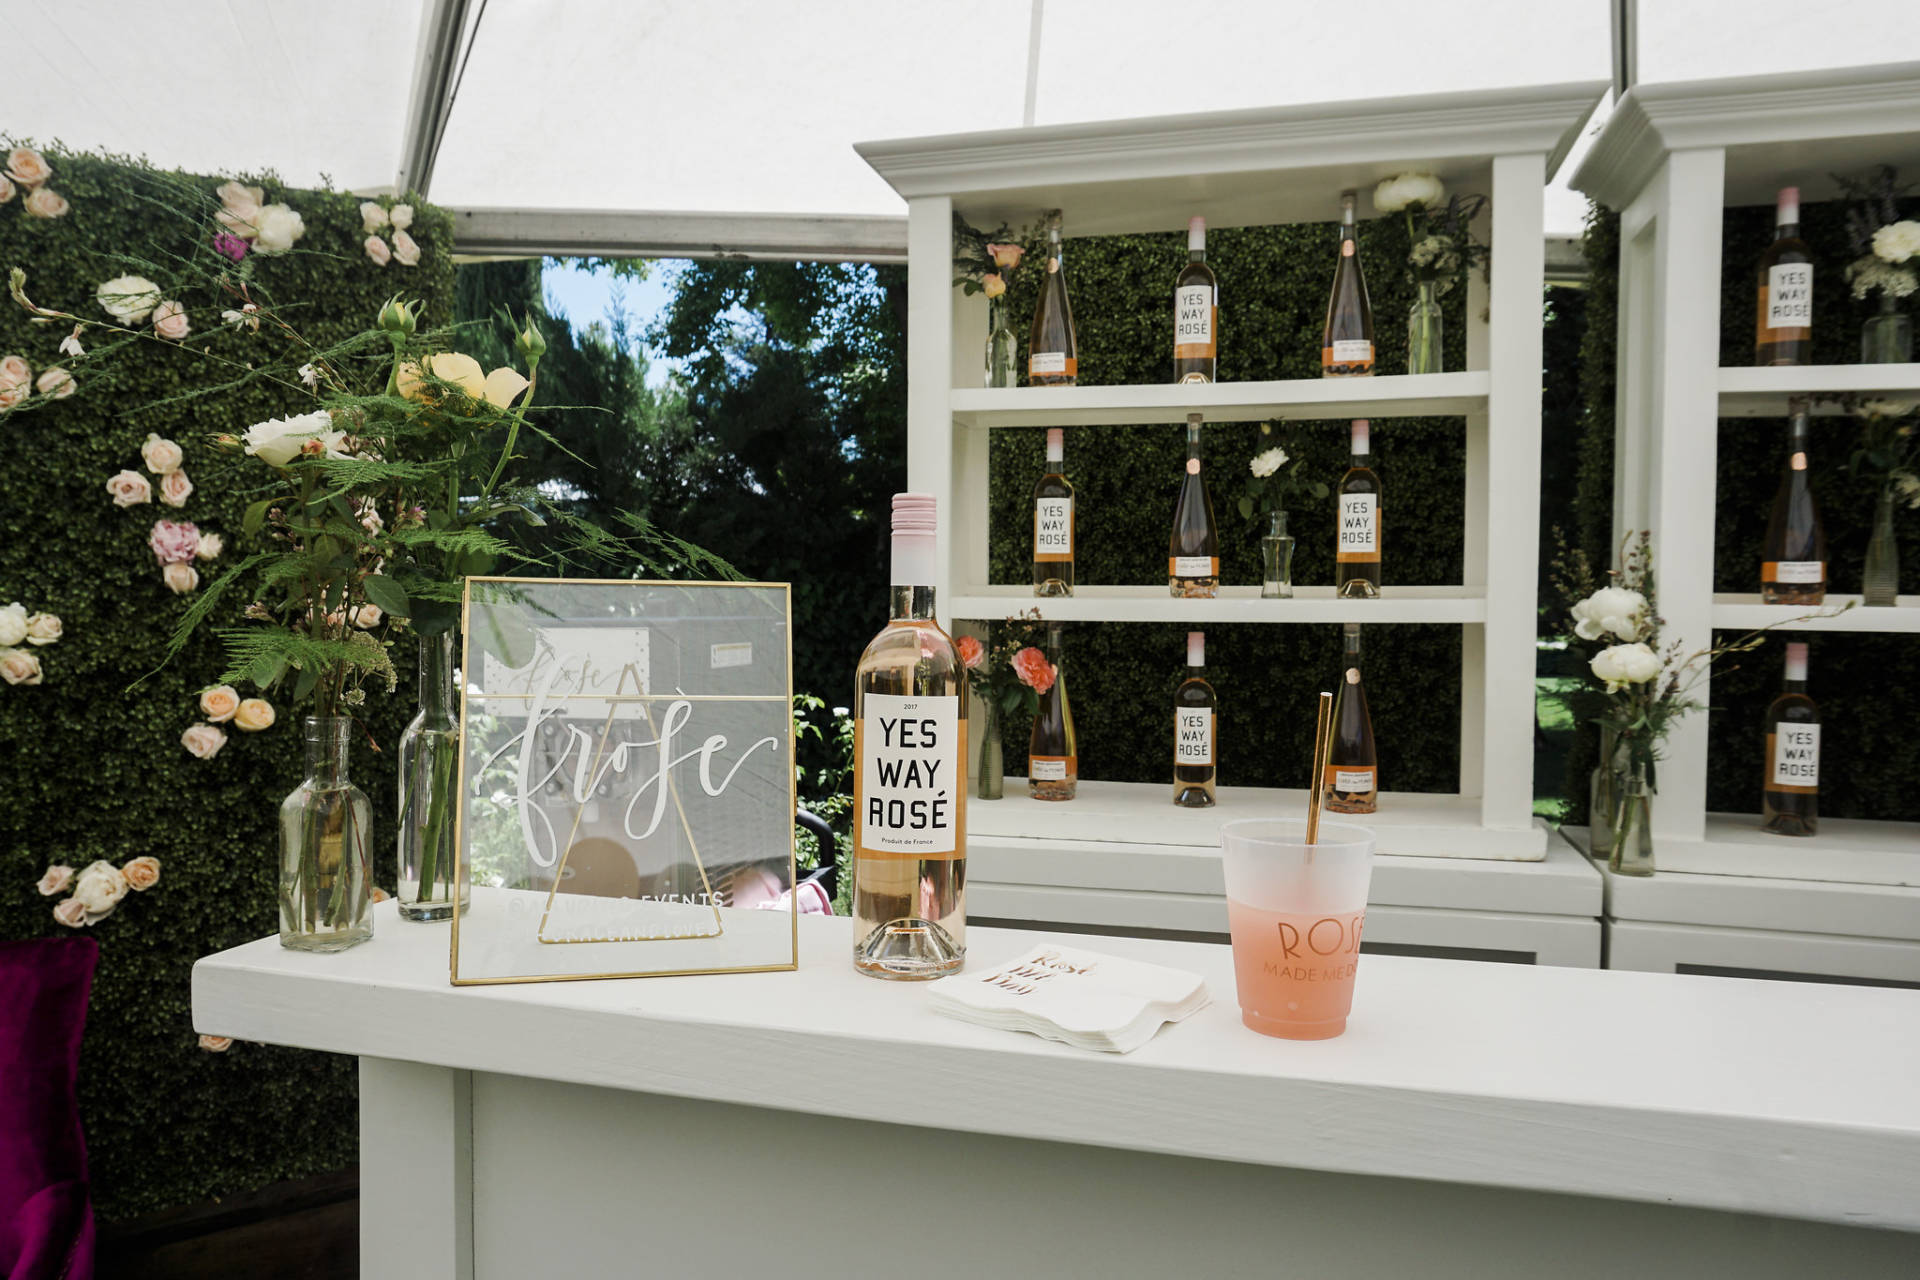 Summerland 2018: Park Winters: The day was filled with poolside relaxation, offerings from a curated collection of food & drink vendors from Northern California, demos, and dreamy photo ops everywhere you look